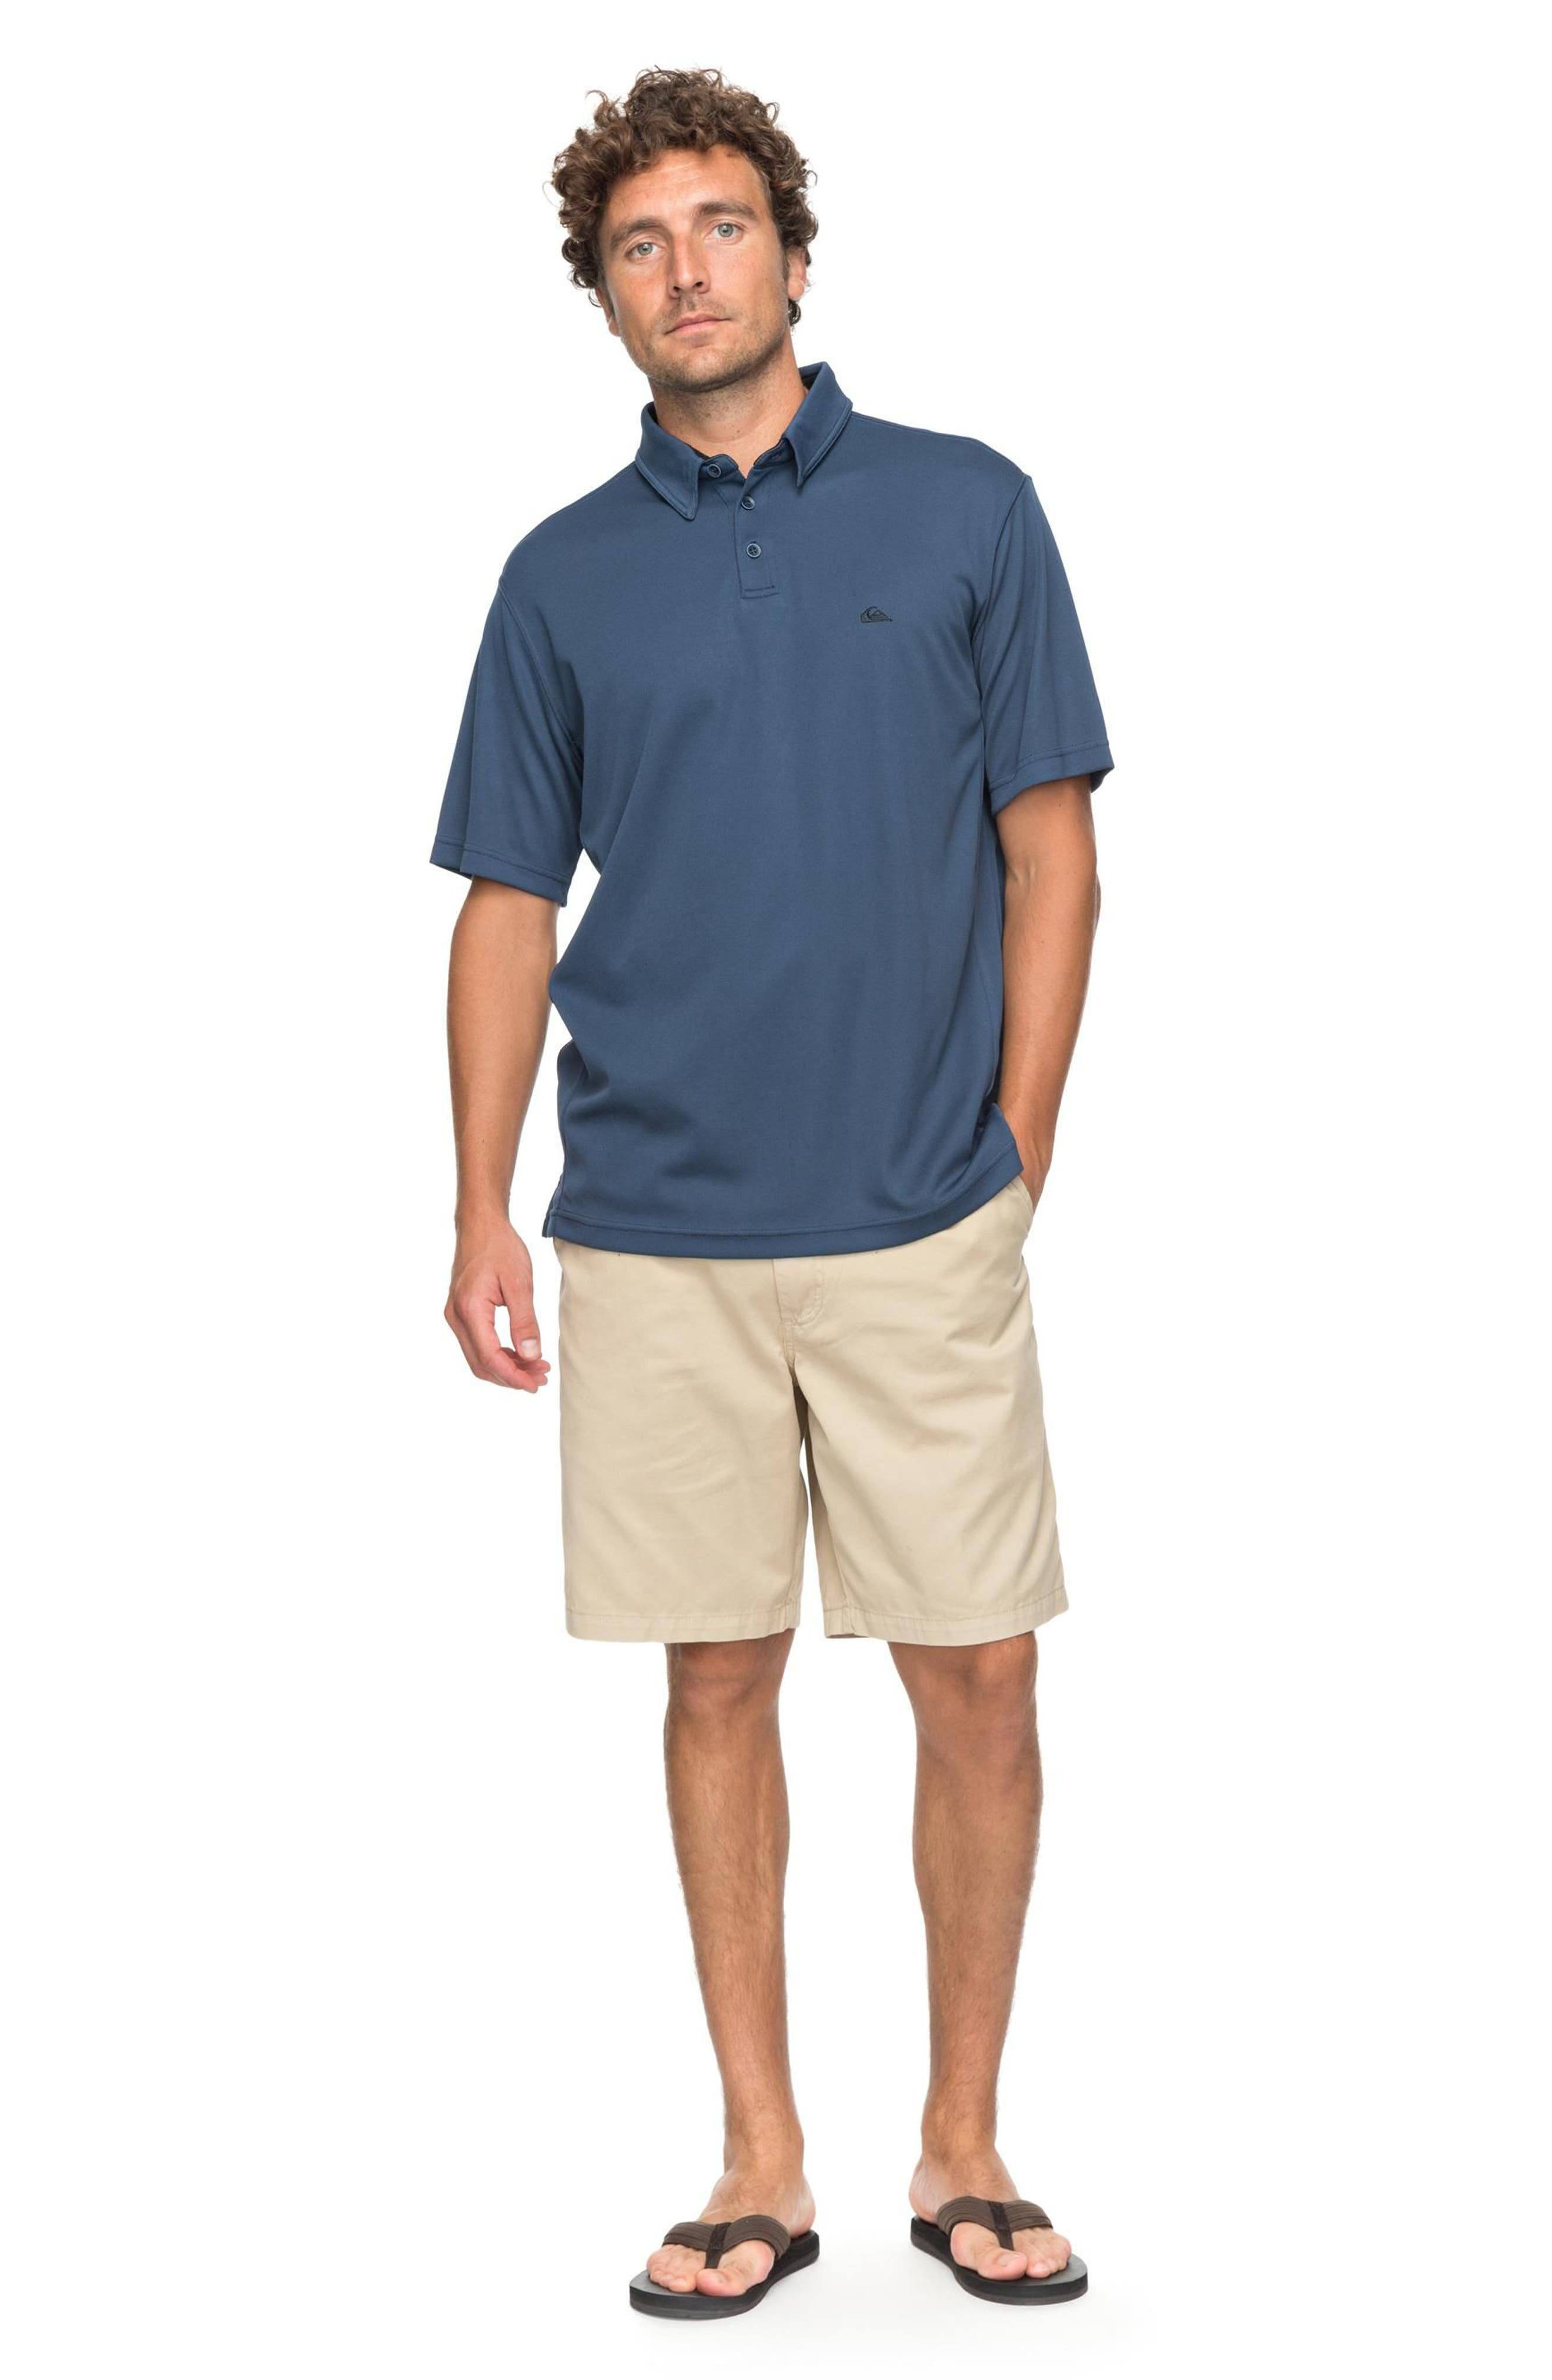 Water 2 Technical Polo Shirt,                             Alternate thumbnail 5, color,